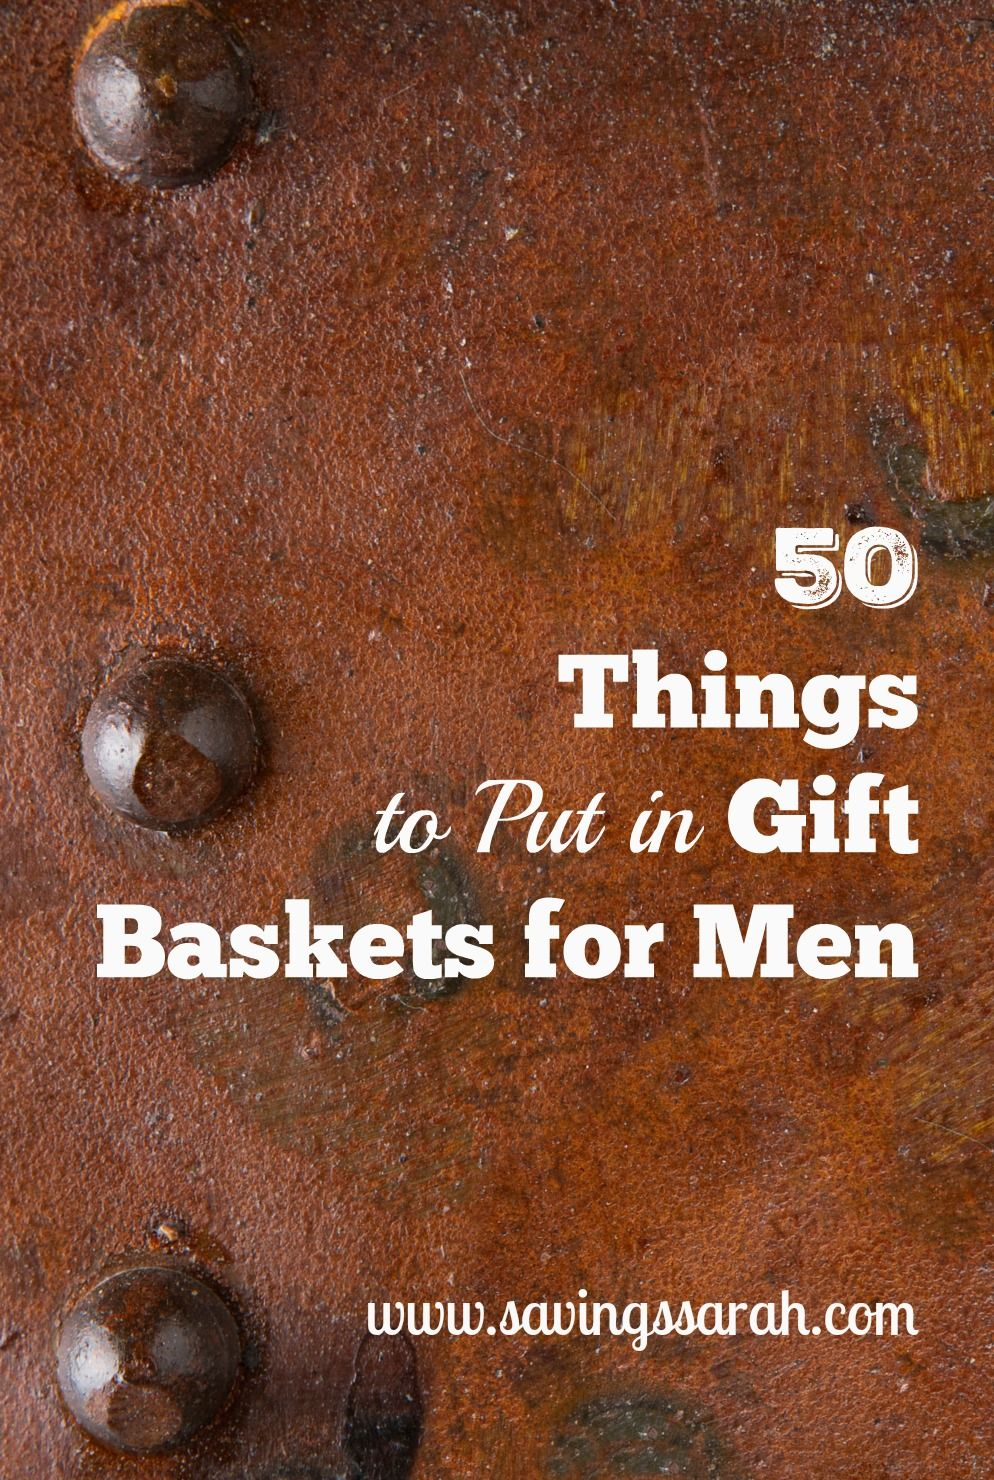 50 Things to Put in Gift Baskets for Men Today